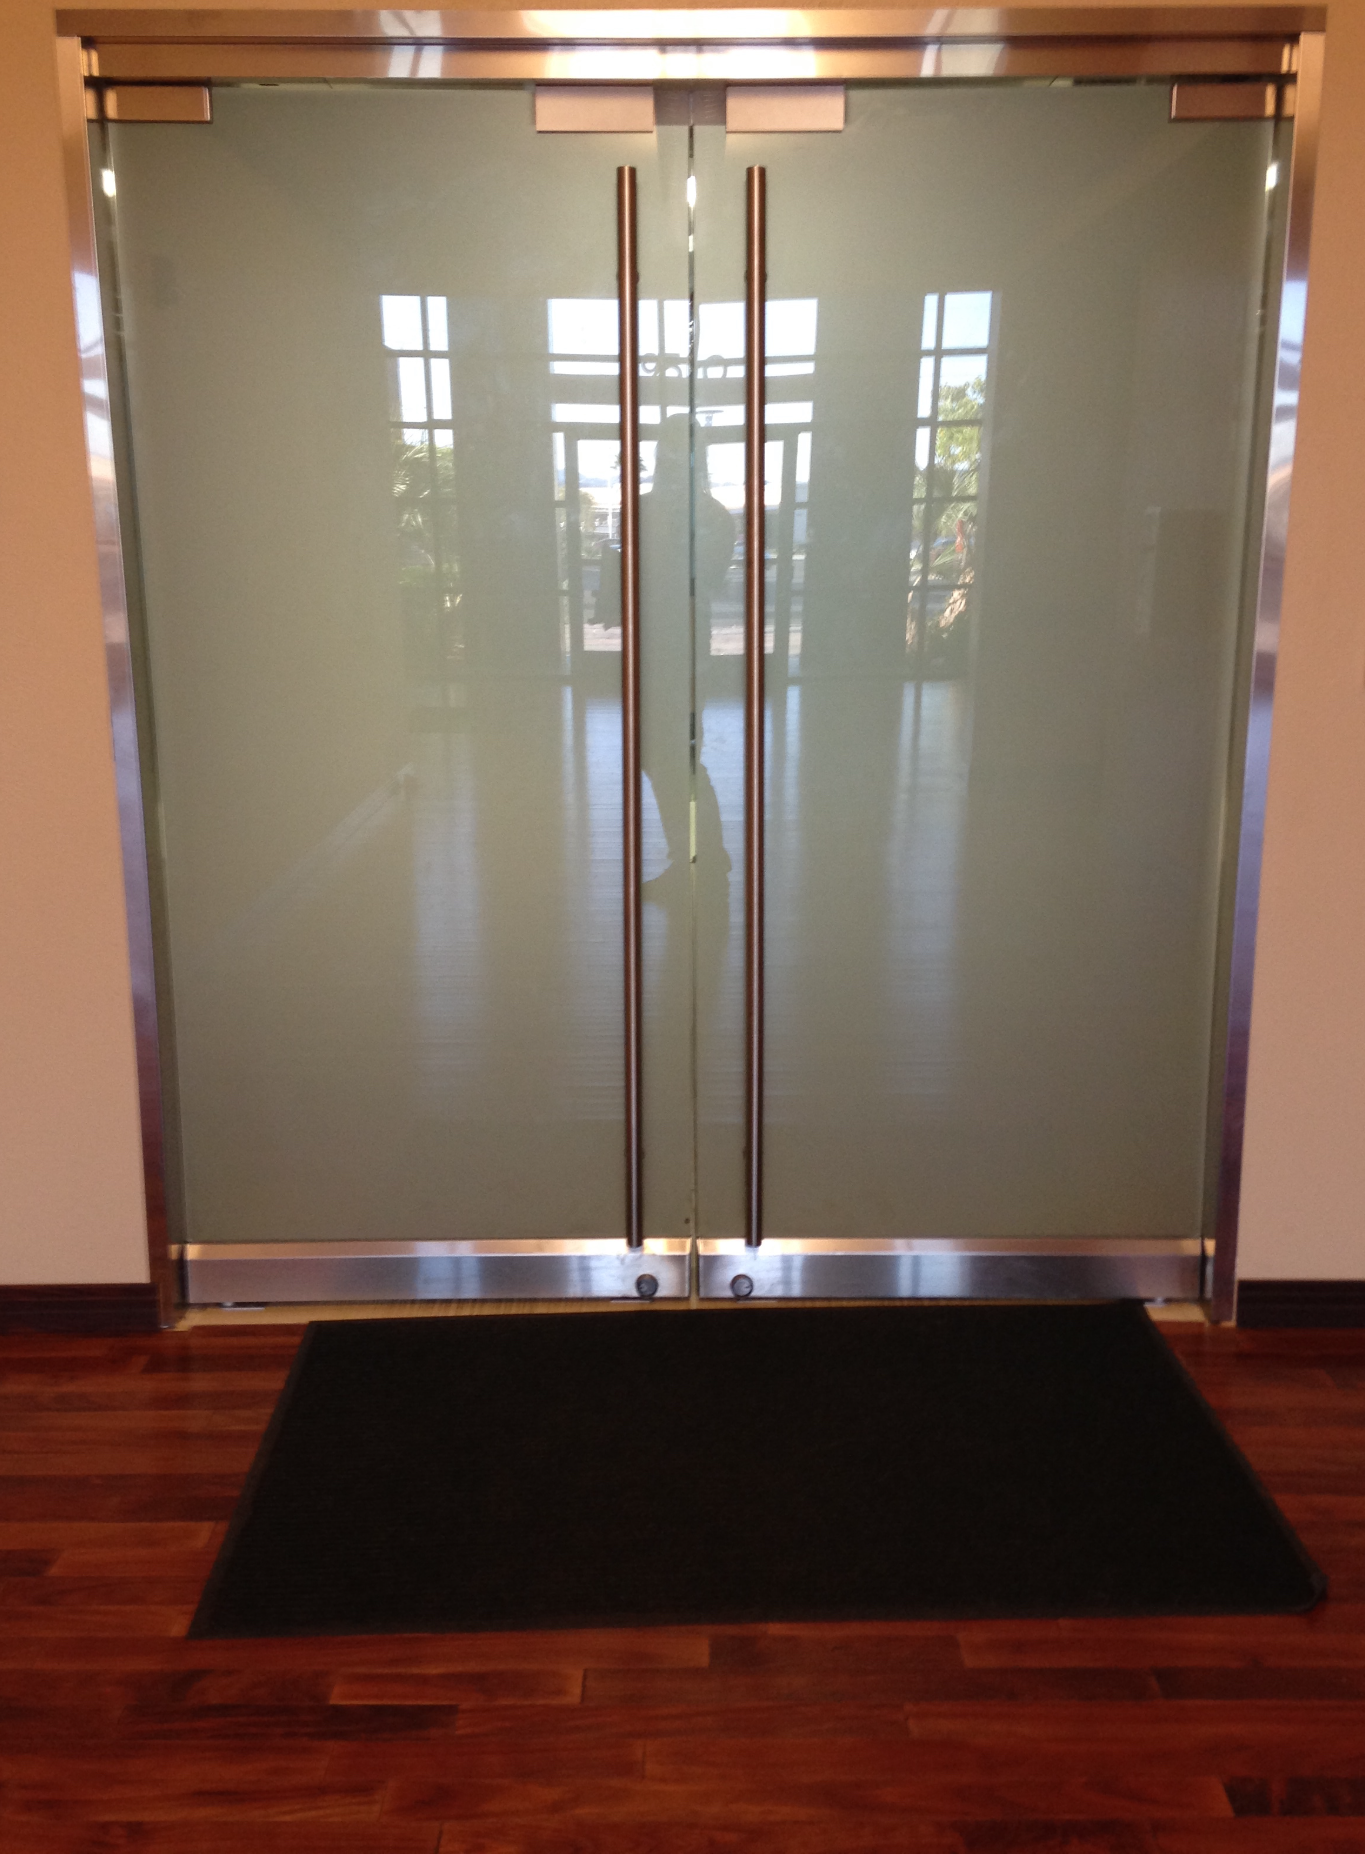 Frameless glass storefront door - Storefront Mall Front Custom Glass Repair Commercial Doors Herculite Door Repair